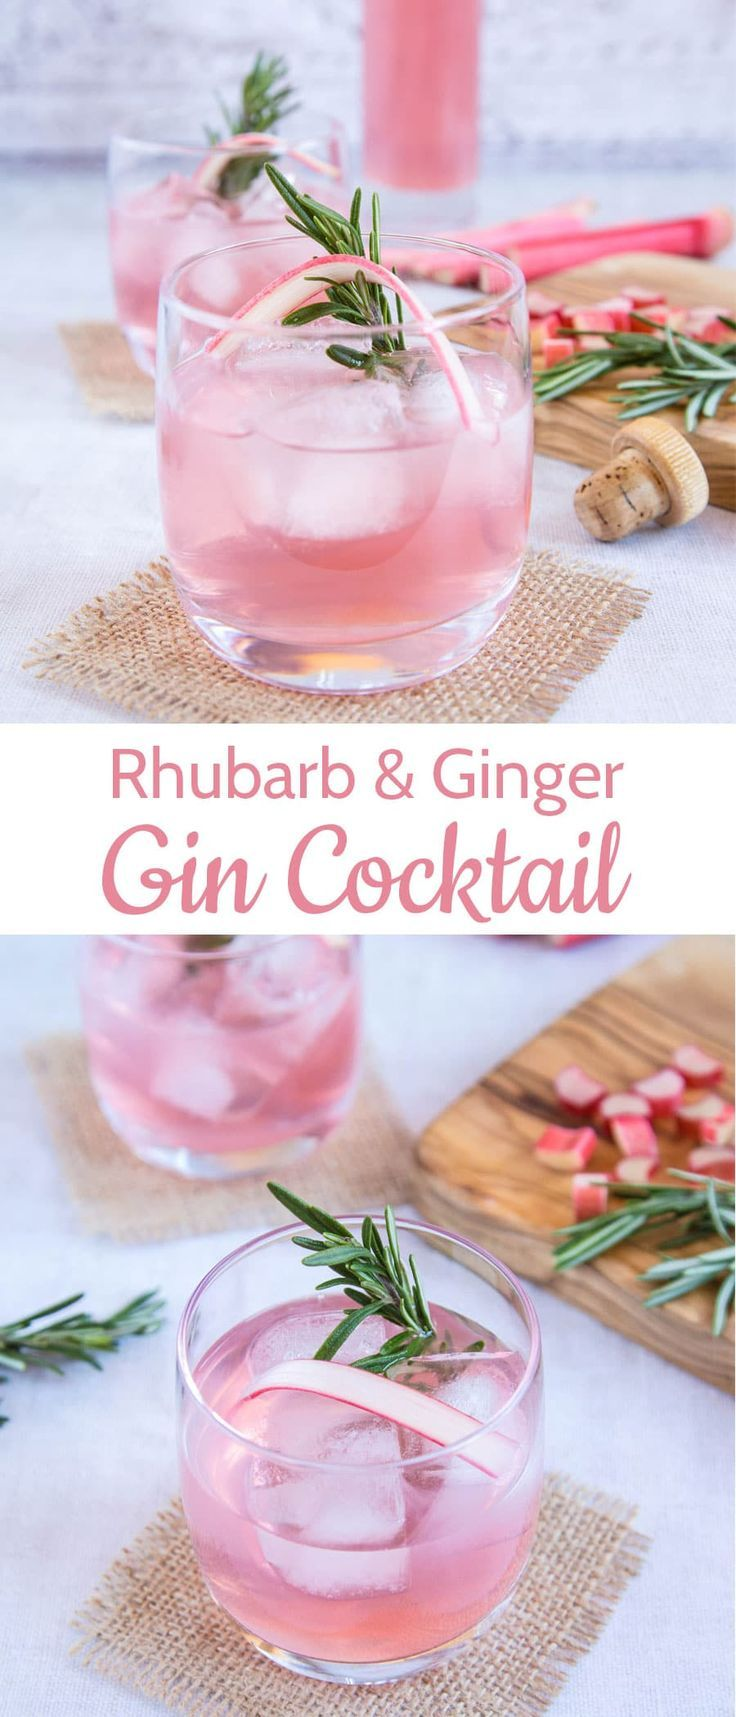 Two beautiful photos of a pretty pink rhubarb and ginger gin cocktail made with ...